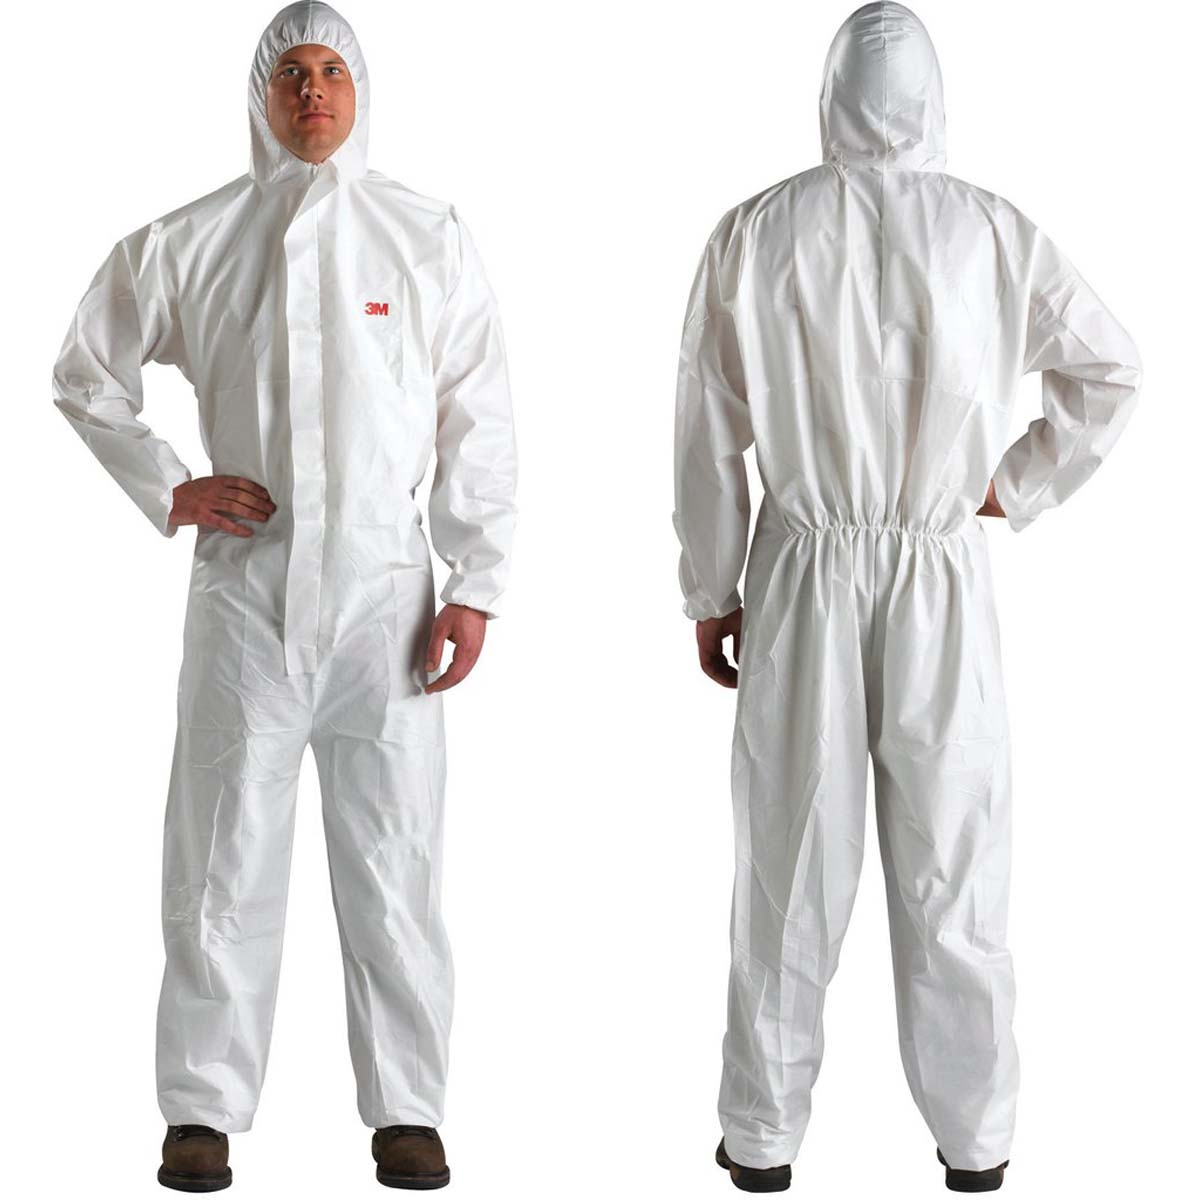 """3Mâ""""¢ Disposable Protective Coverall Safety Work Wear 4510-BLK-M"""